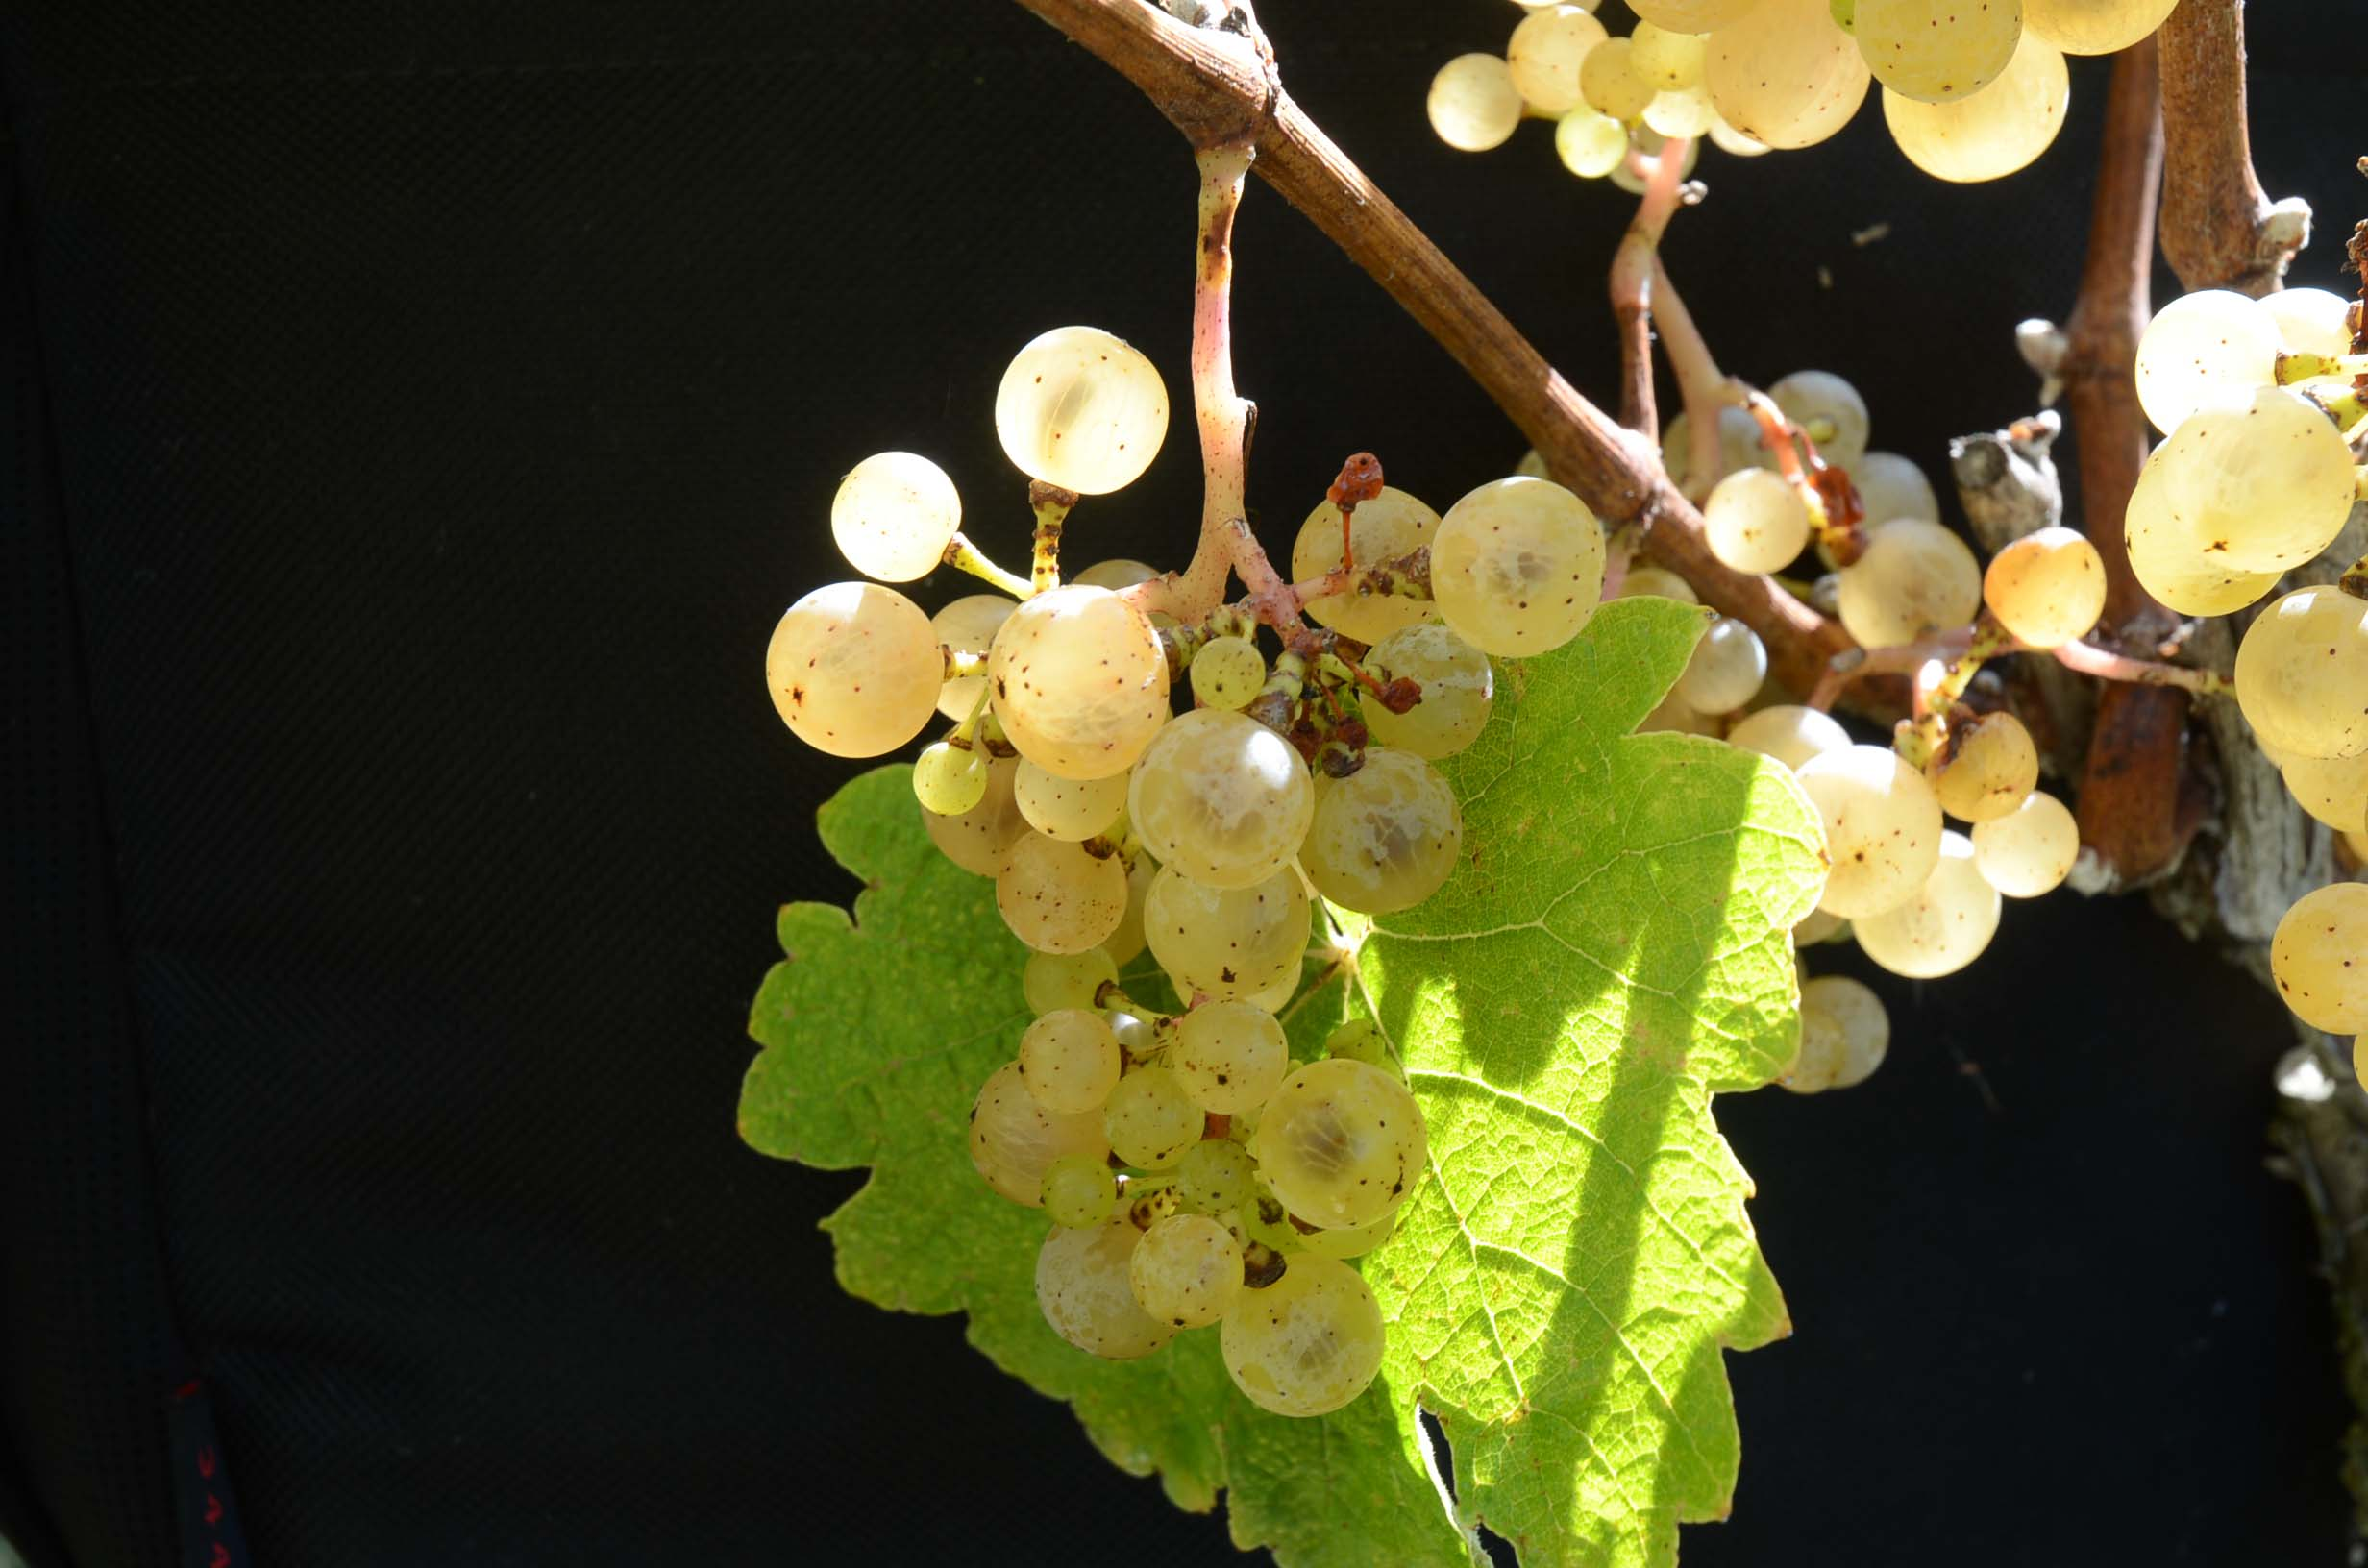 JBR Wine Grapes, Virginia farm winery